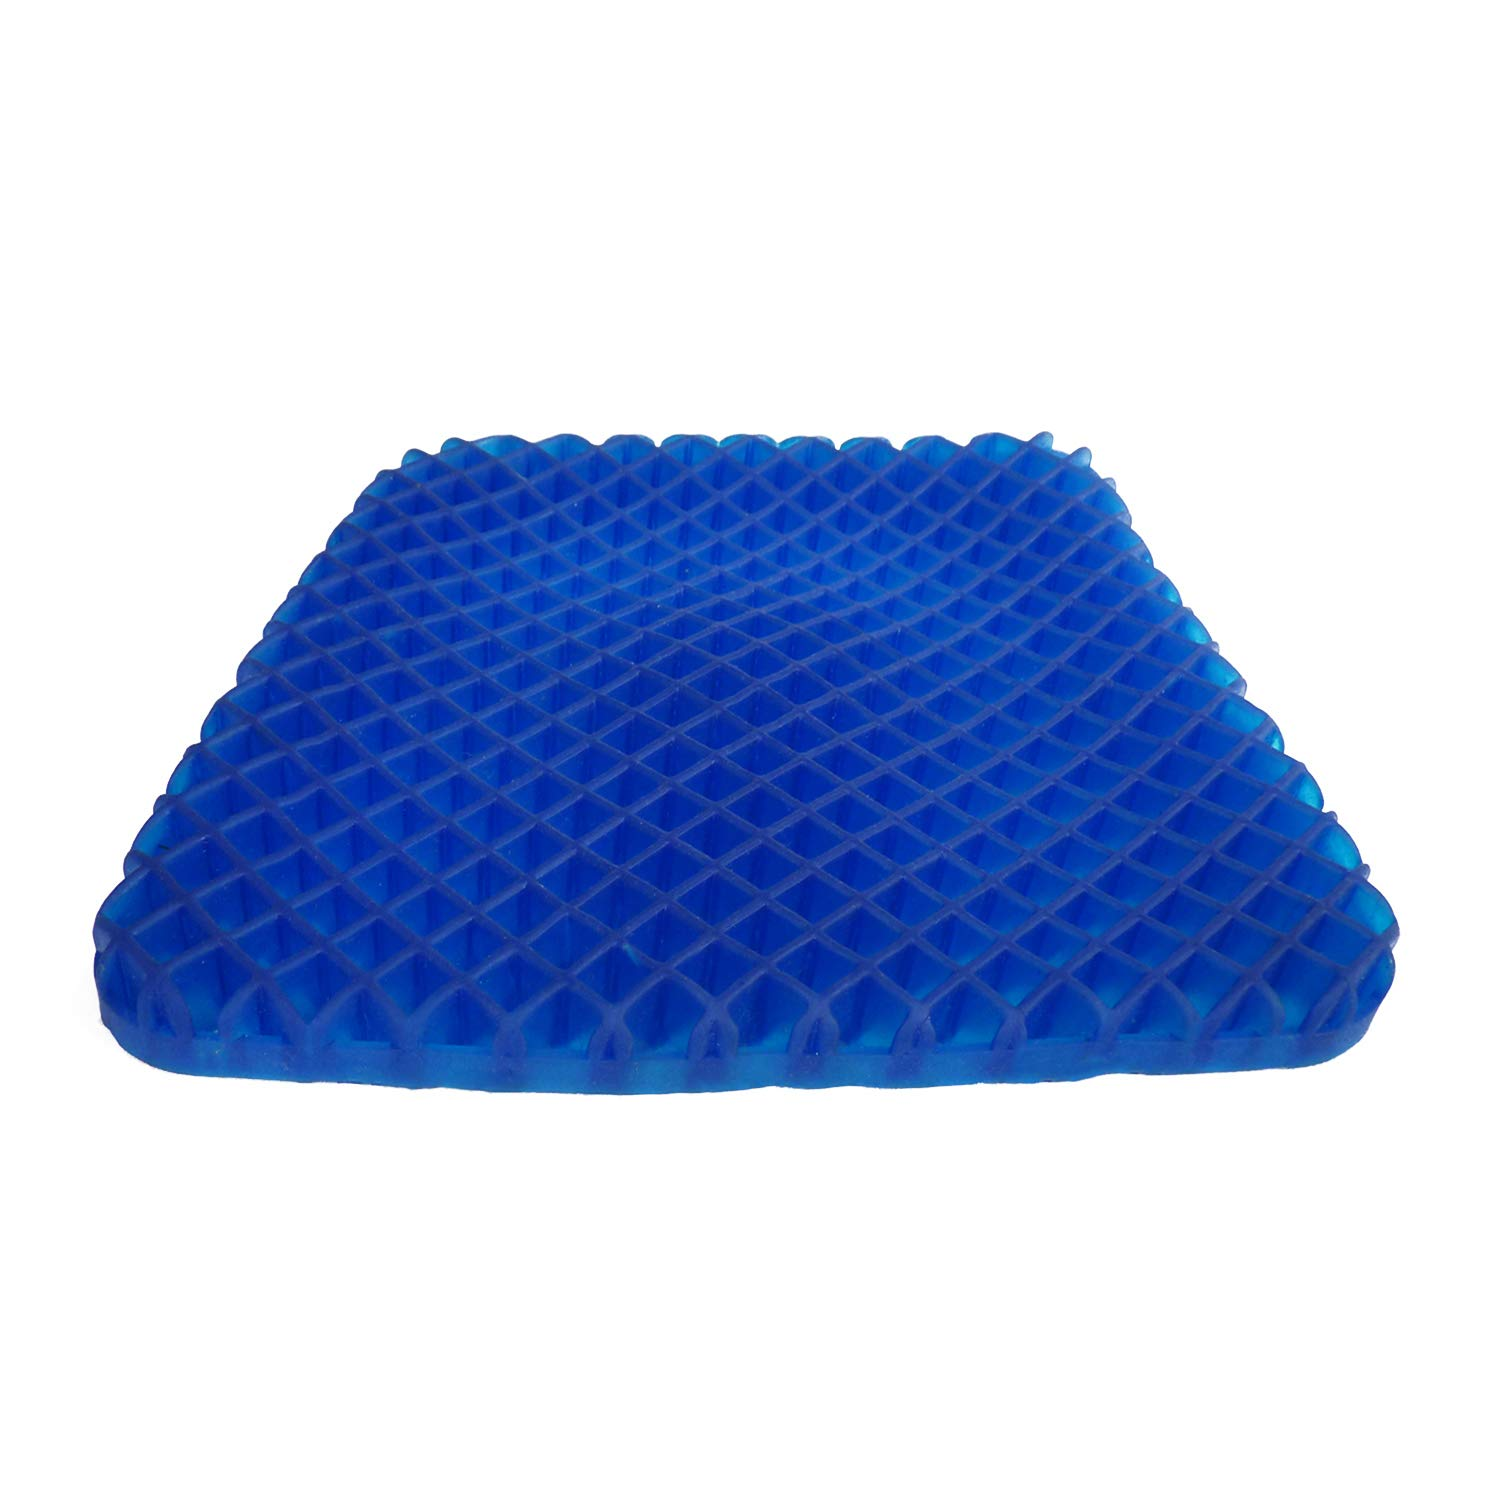 Gel Seat Cushion Pad Non-Slip Orthopedic Gel Sitter Cushion for Tailbone Pain Office Chair Car Seat Cushion by SESEAT